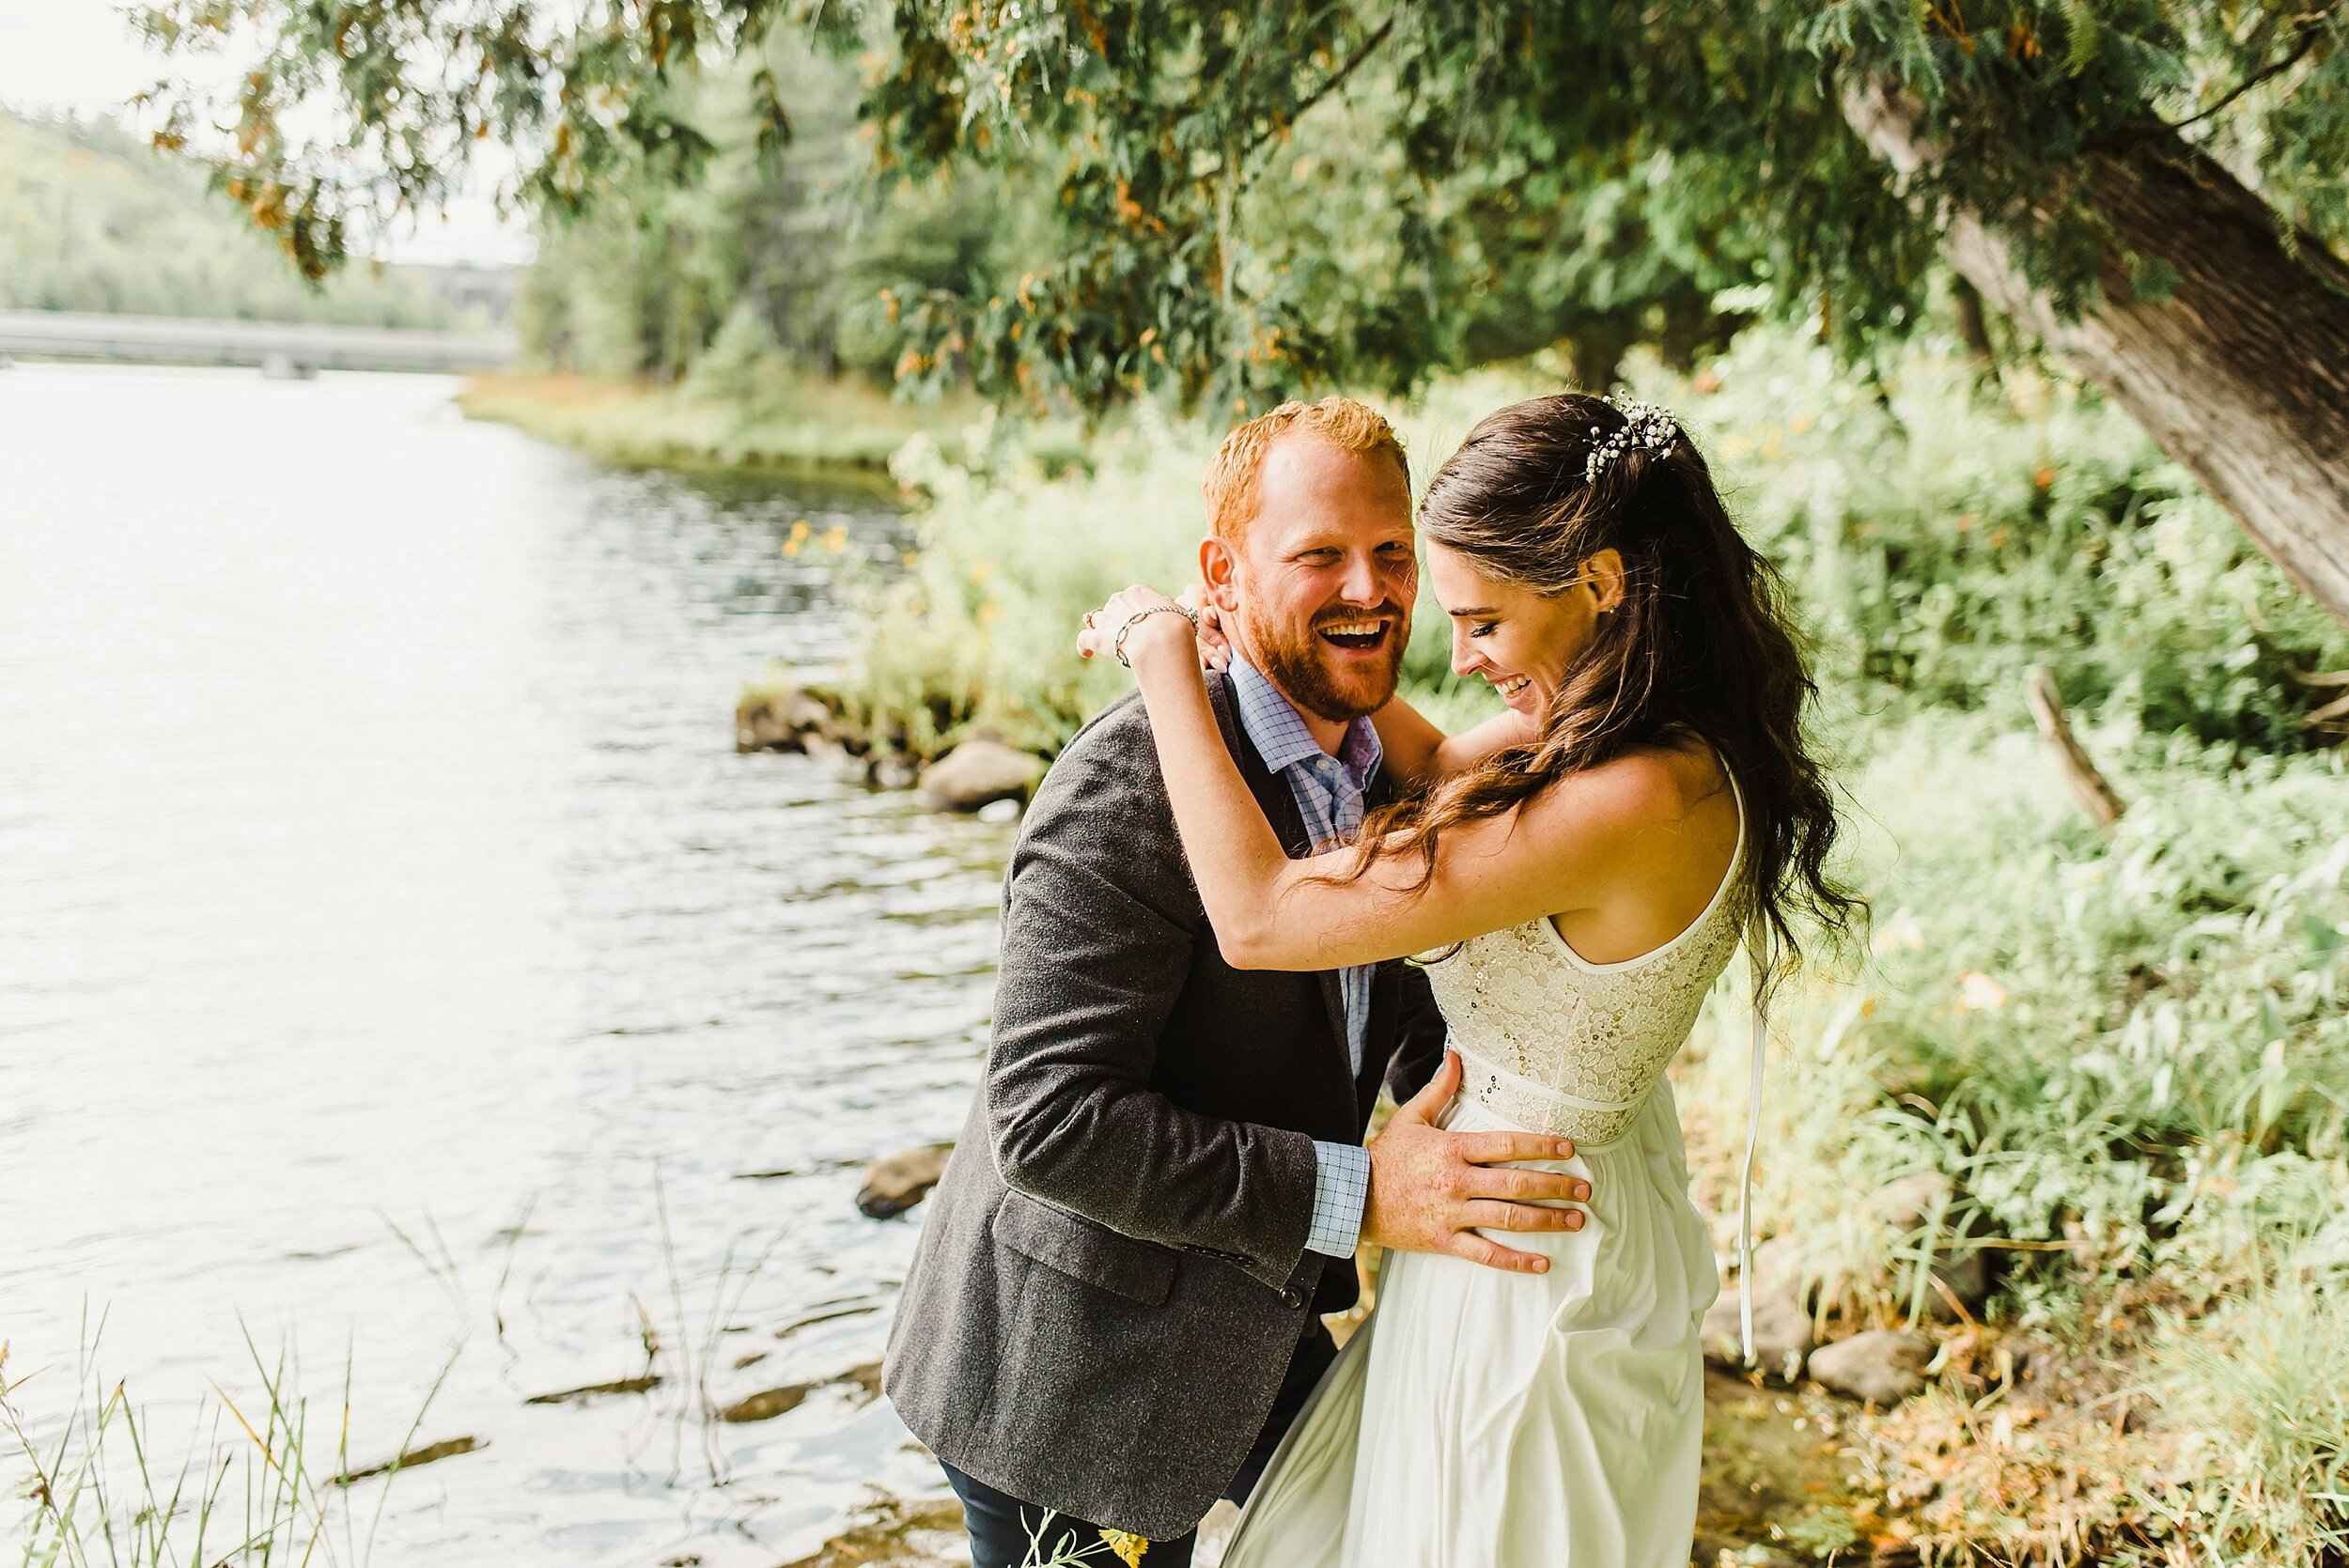 light airy indie fine art ottawa wedding photographer | Ali and Batoul Photography_1263.jpg